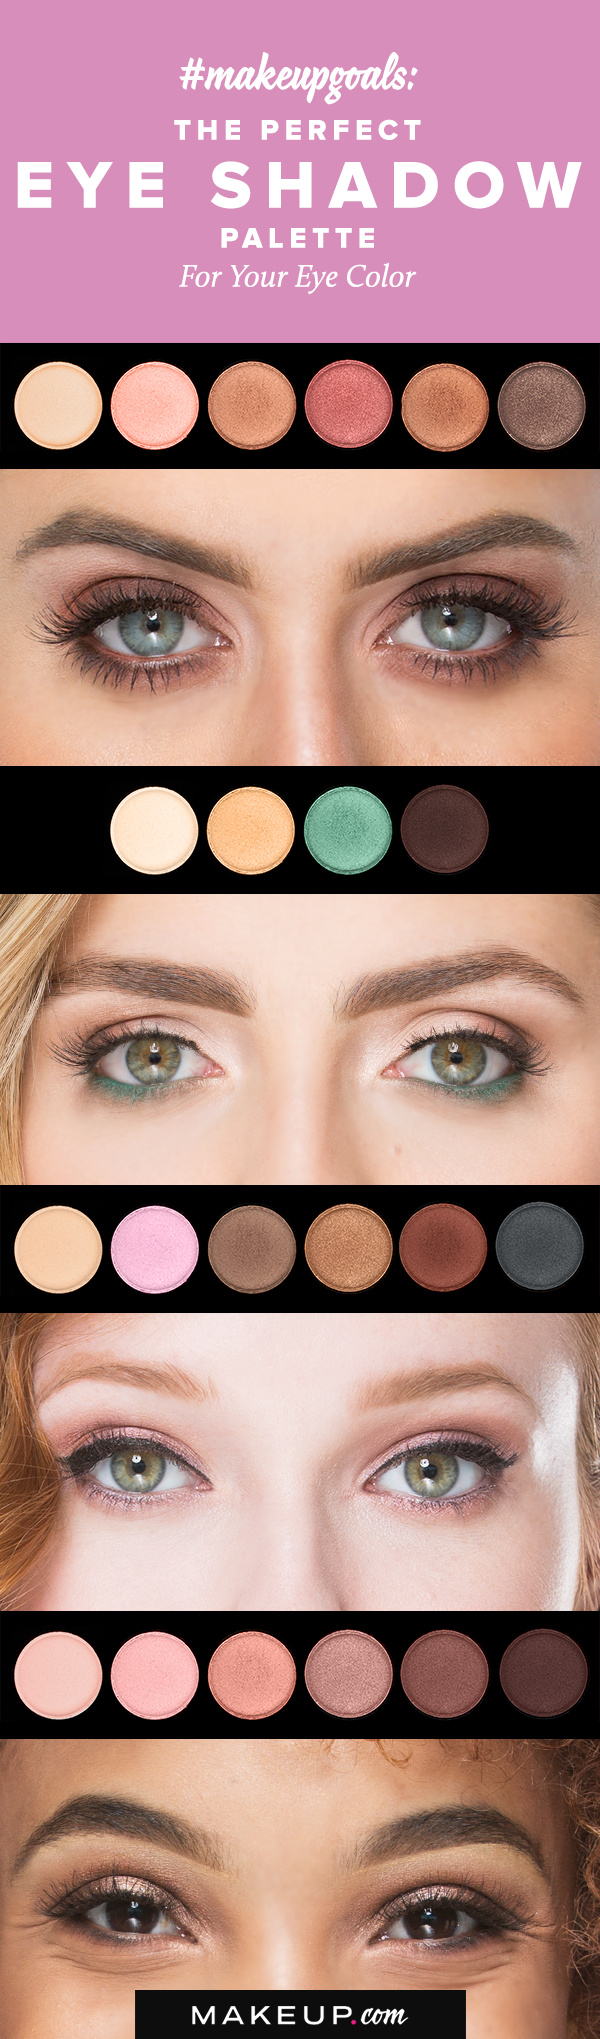 the best eyeshadow palette for your eye color | eye makeup